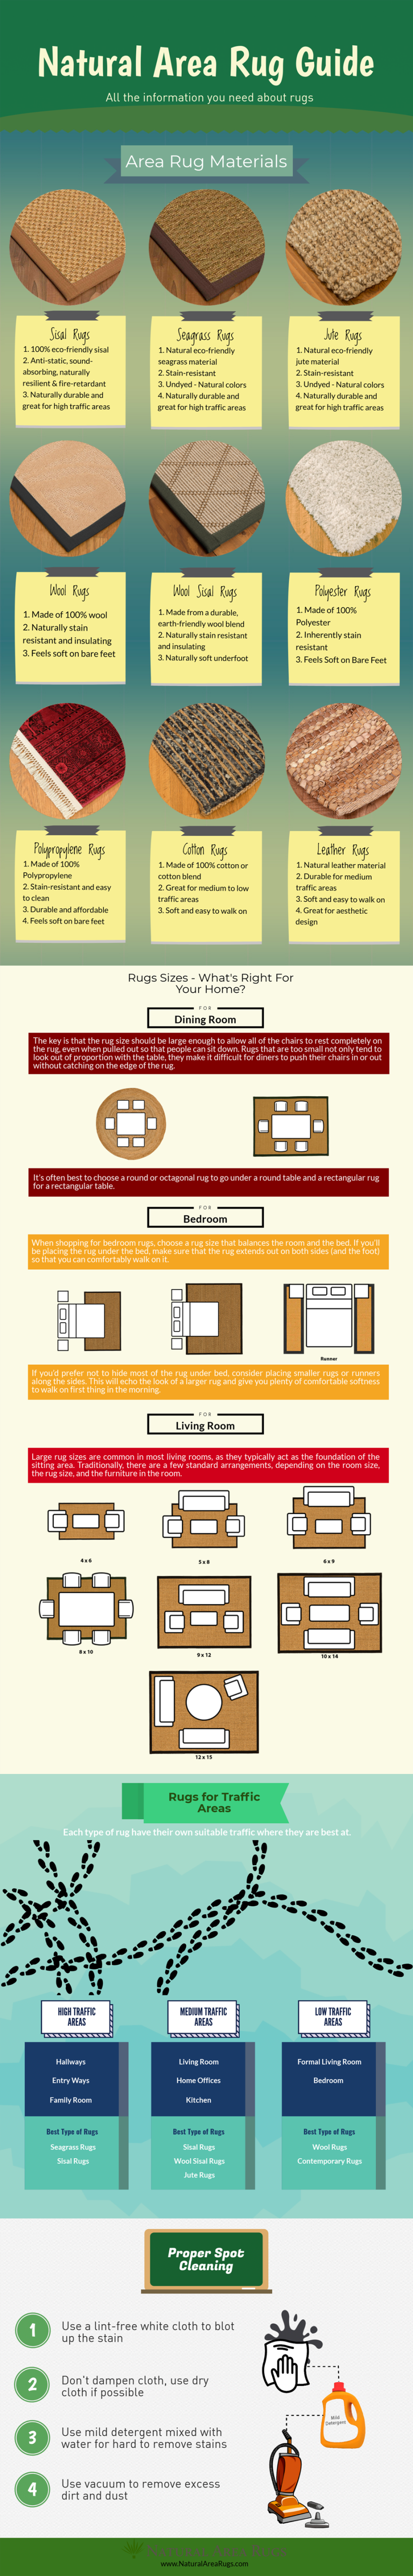 image - All the information you need about rugs